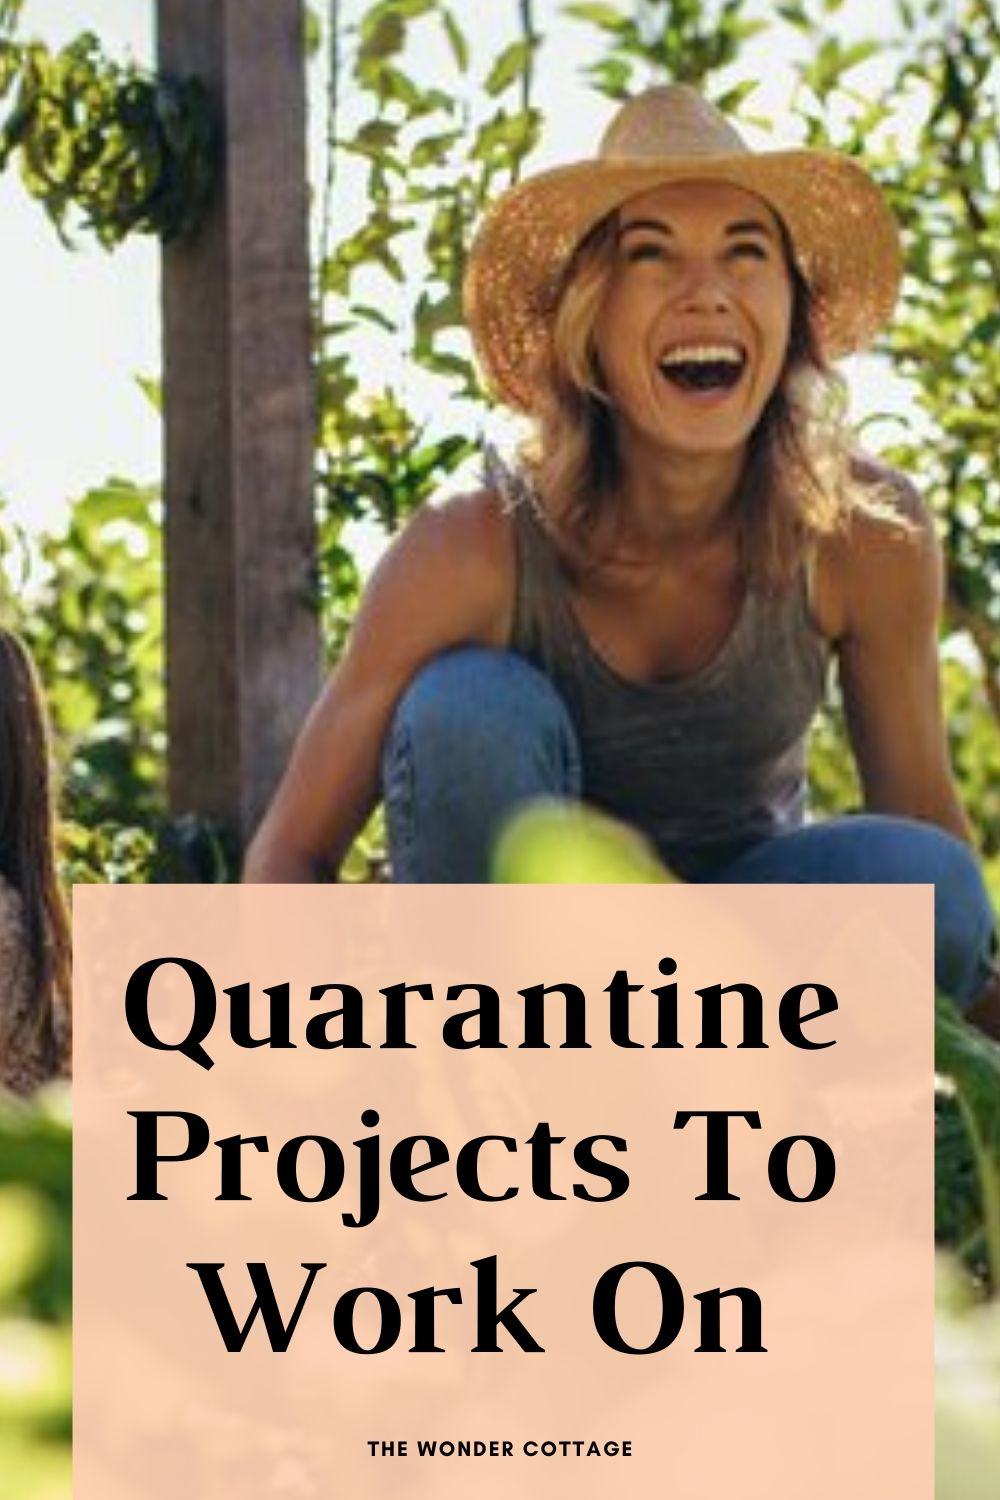 Quarantine projects to work on